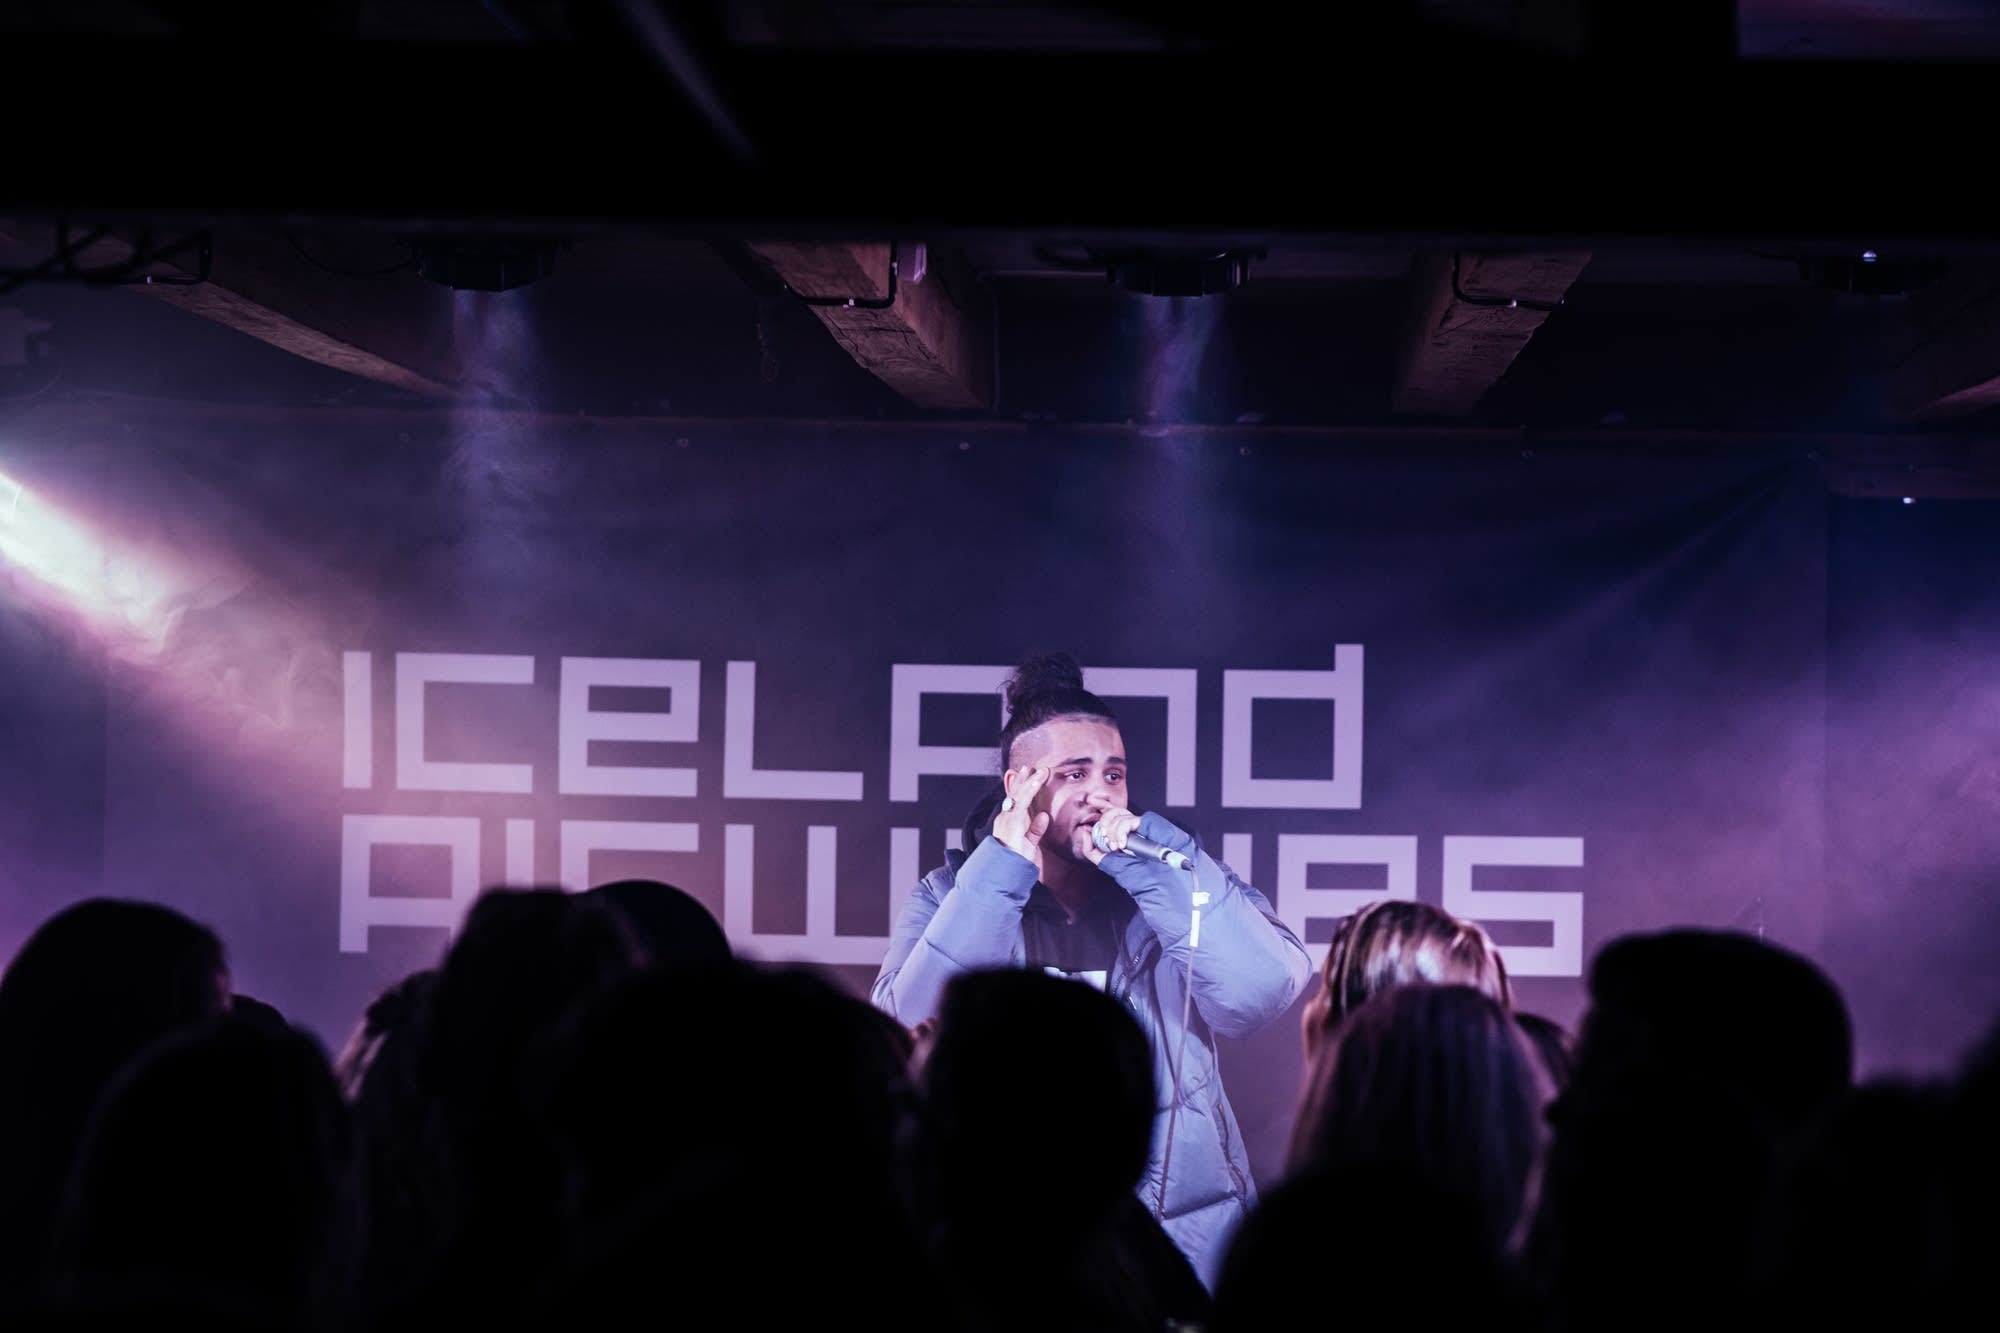 Iceland Airwaves retrospective